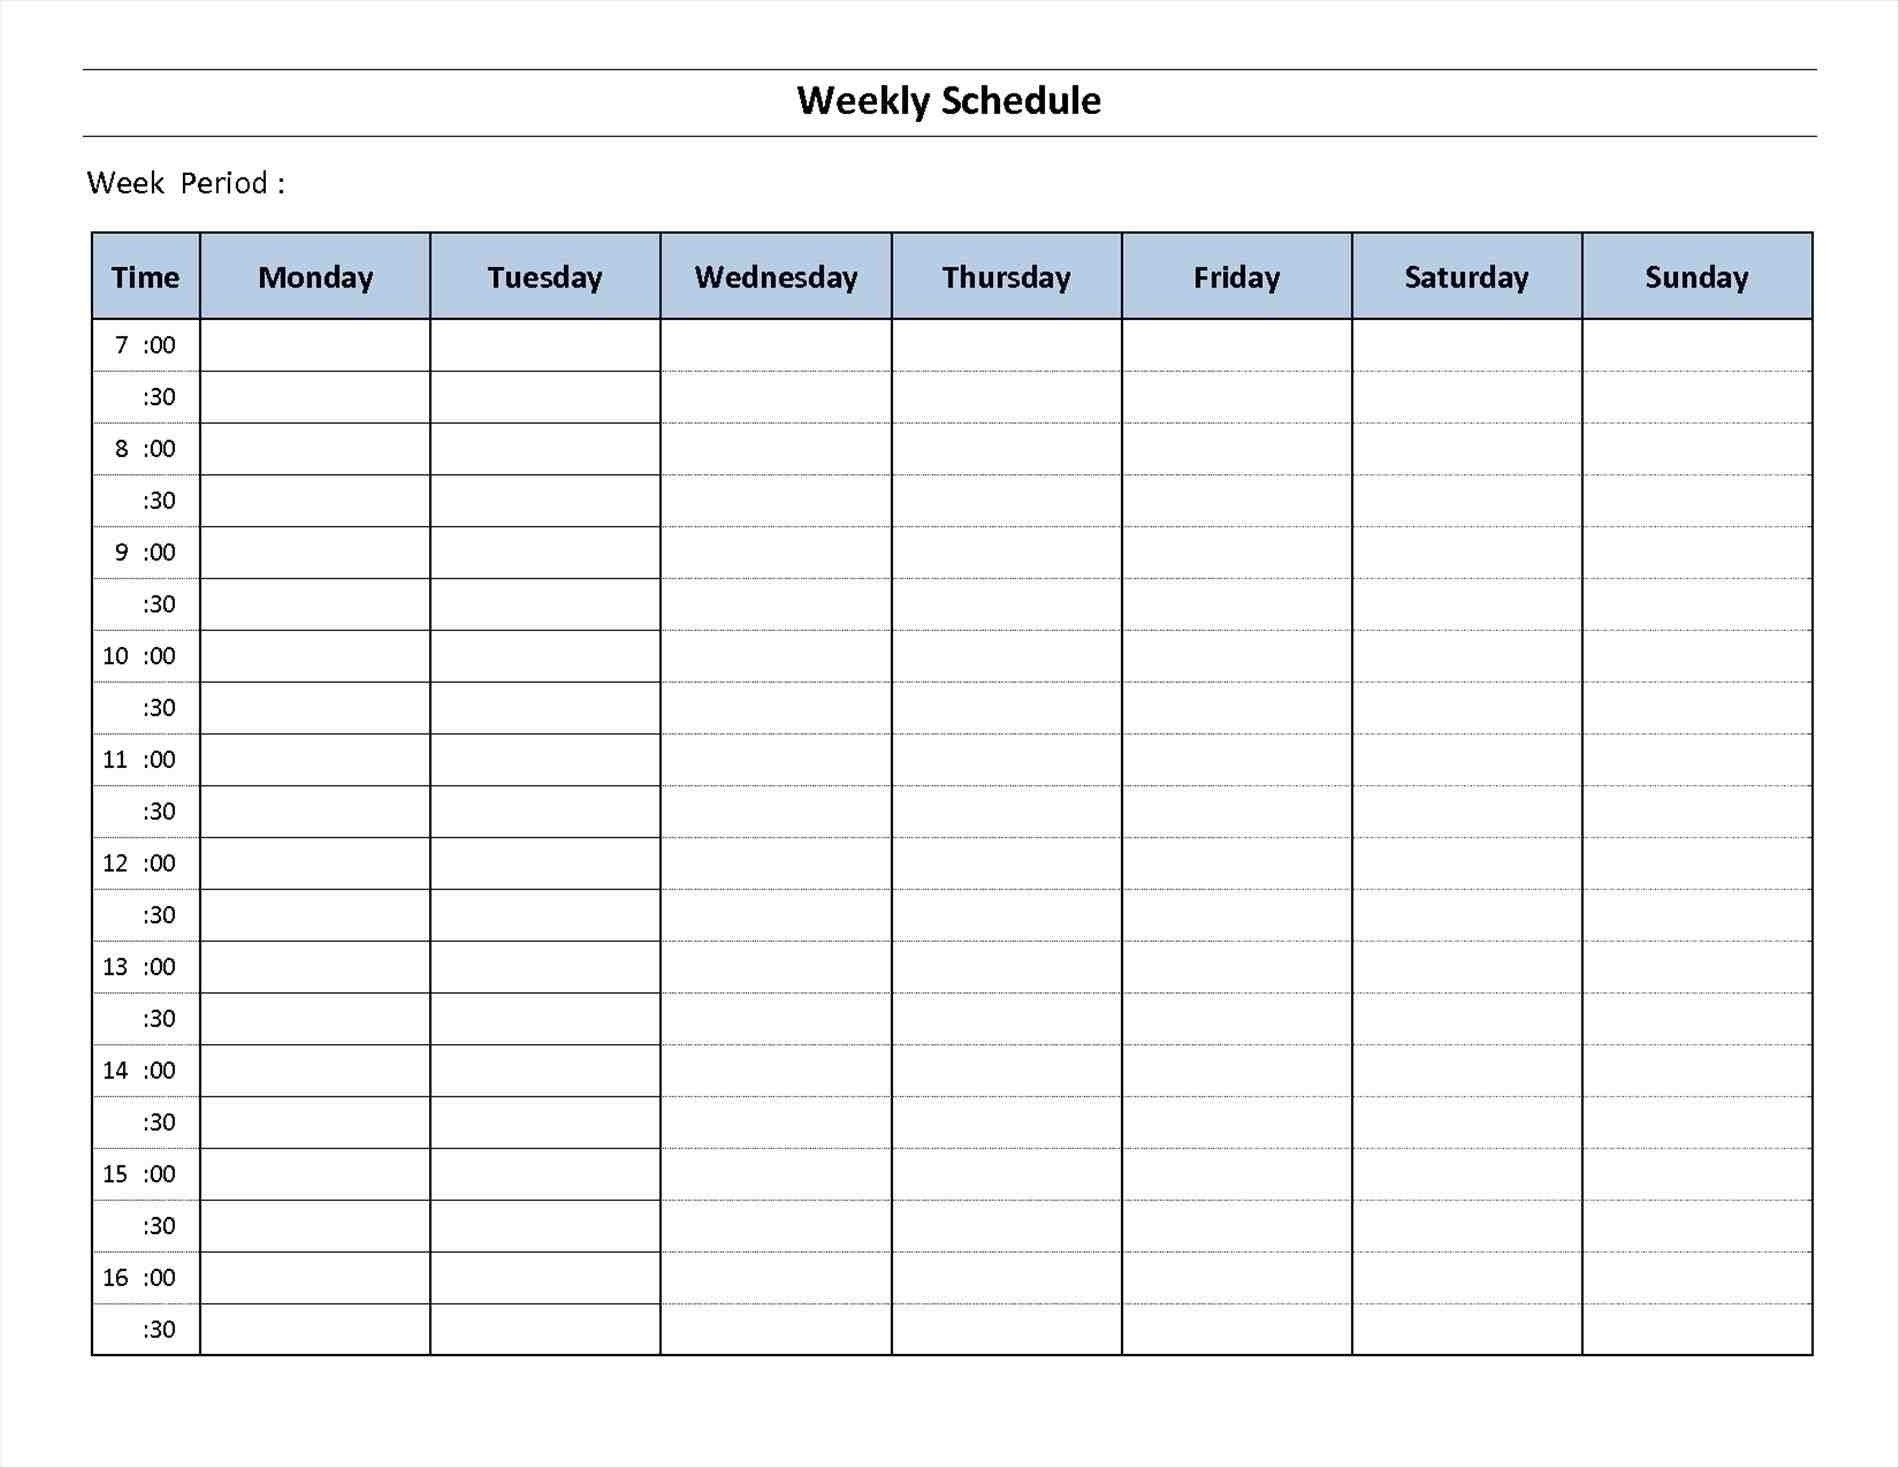 Week Calendar Template Day Schedule | Smorad in Calendar By Day With Printable